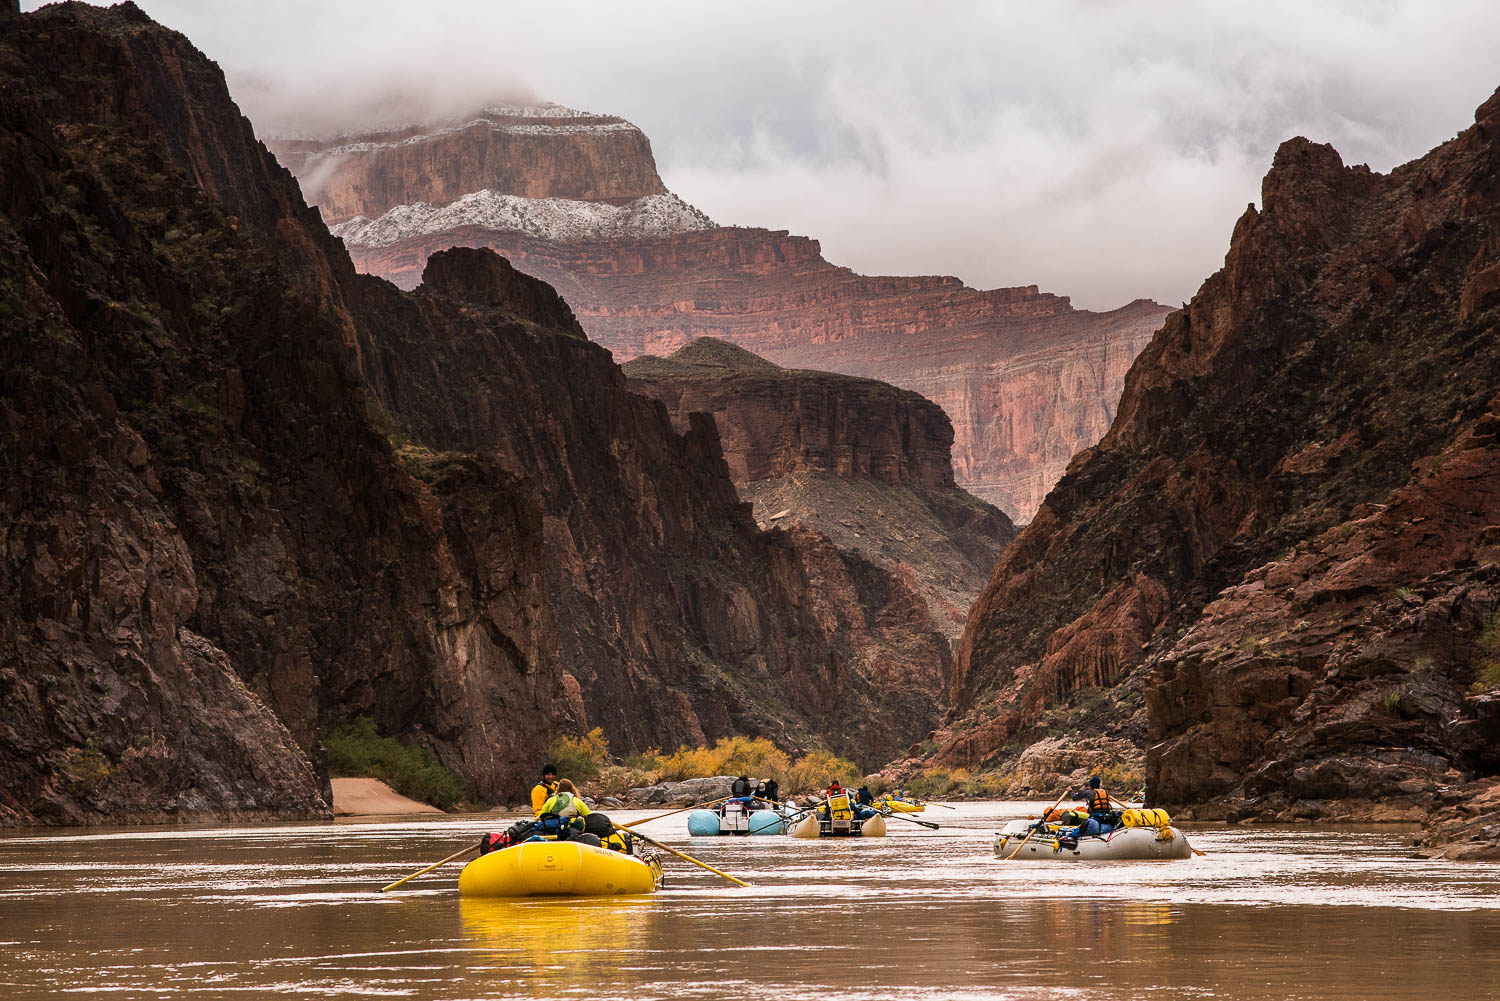 Boats on the Colorado River